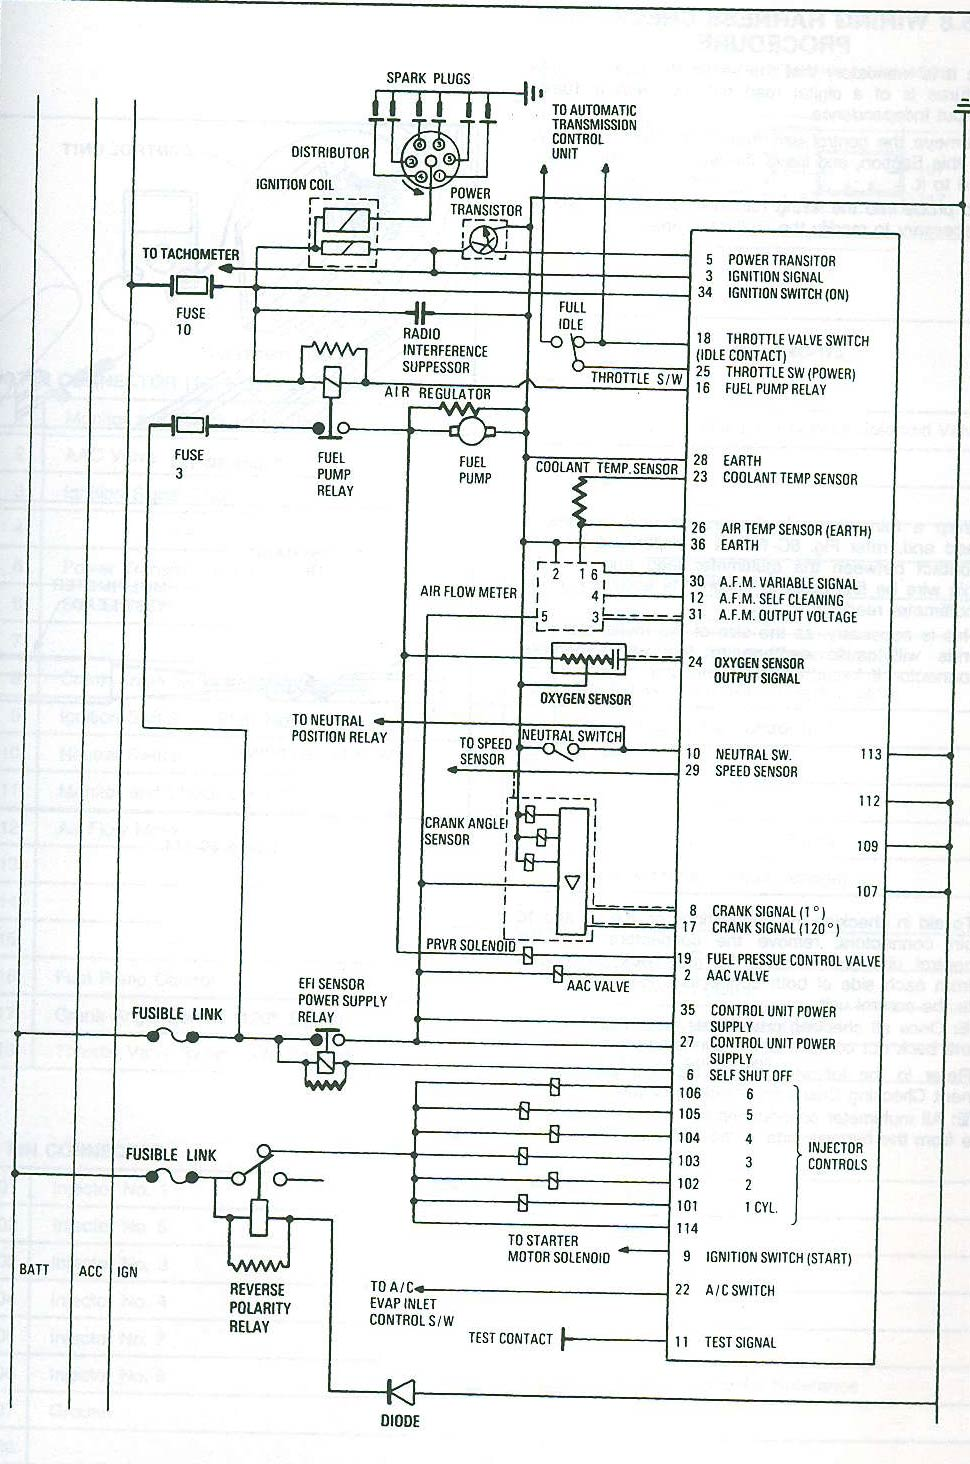 ecuwiring vl commodore dash wiring diagram efcaviation com vt commodore fuel pump wiring diagram at gsmportal.co